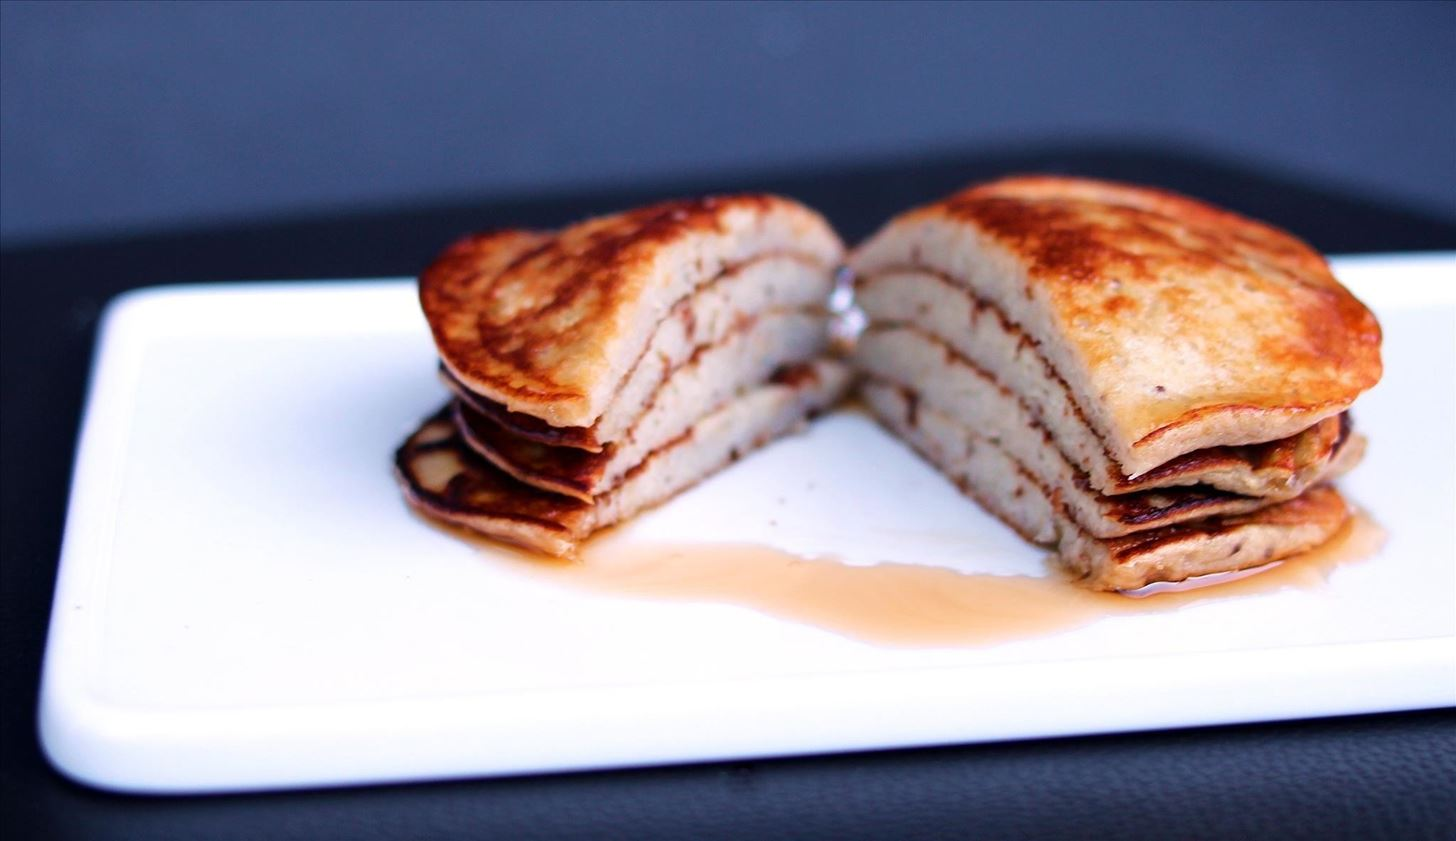 How to Make 2-Ingredient Pancakes That Are High Protein, Low-Carb & Gluten-Free